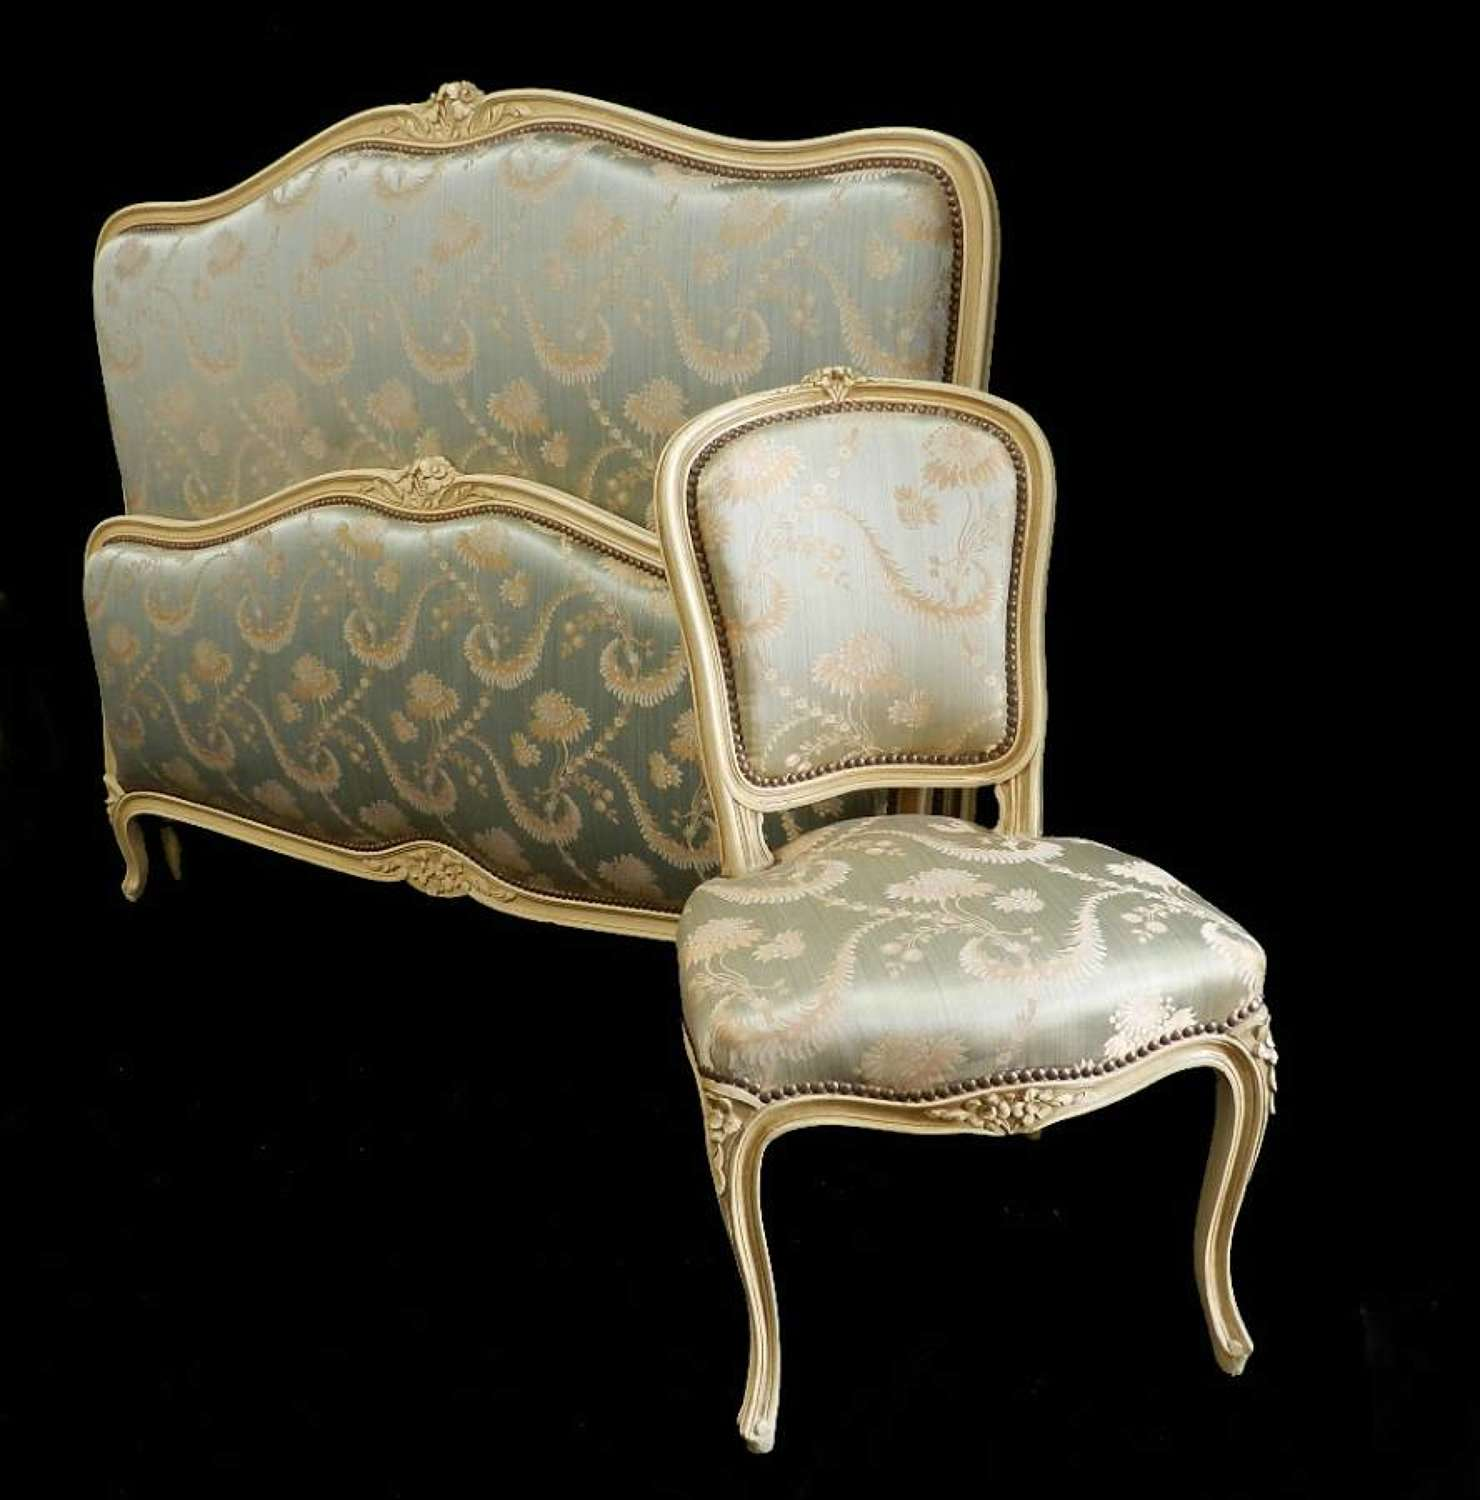 French Bed + Base Double or King size + Chair upholstered Vintage Louis